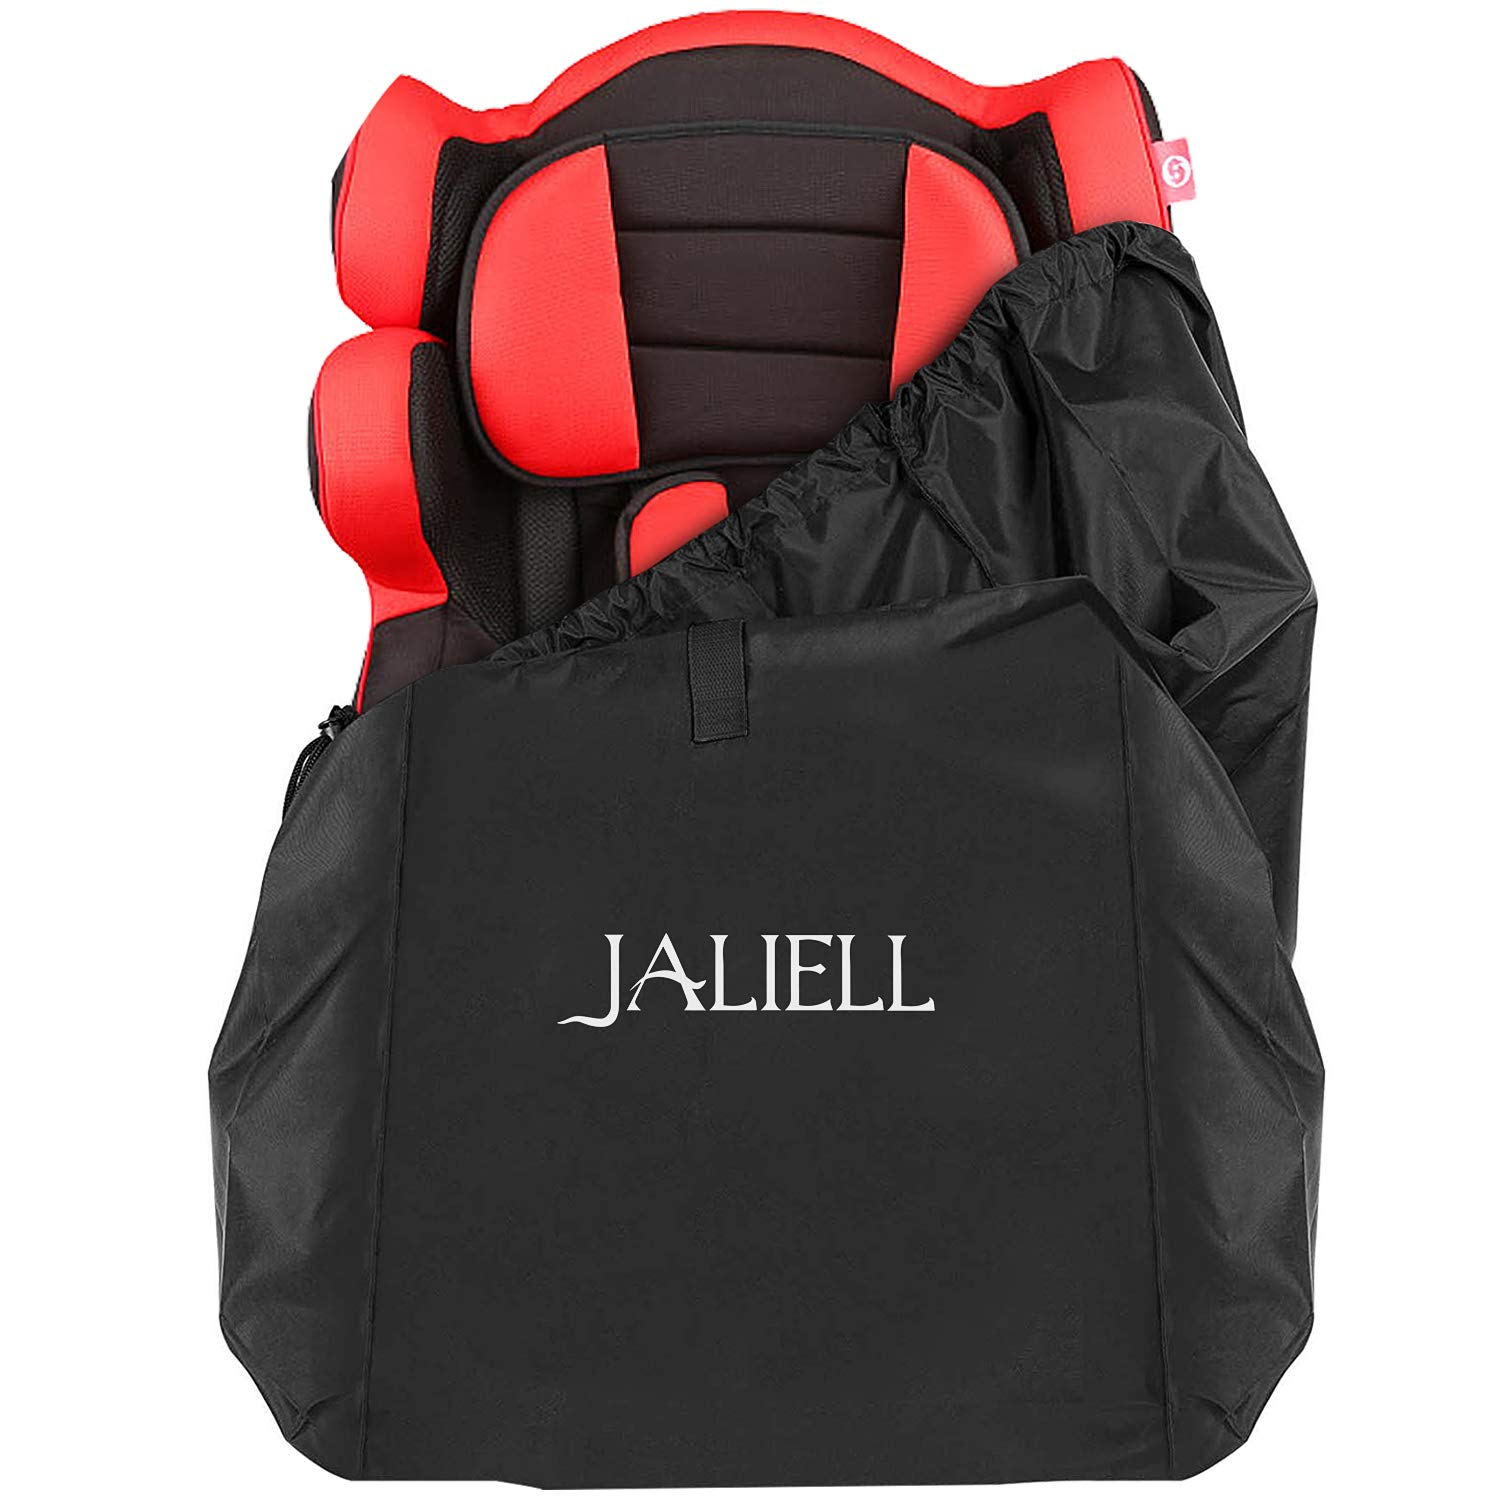 JALIELL Car Seat Travel Bag - Car Seat Bag for Airplane Gate Check and Carrier by JALIELL